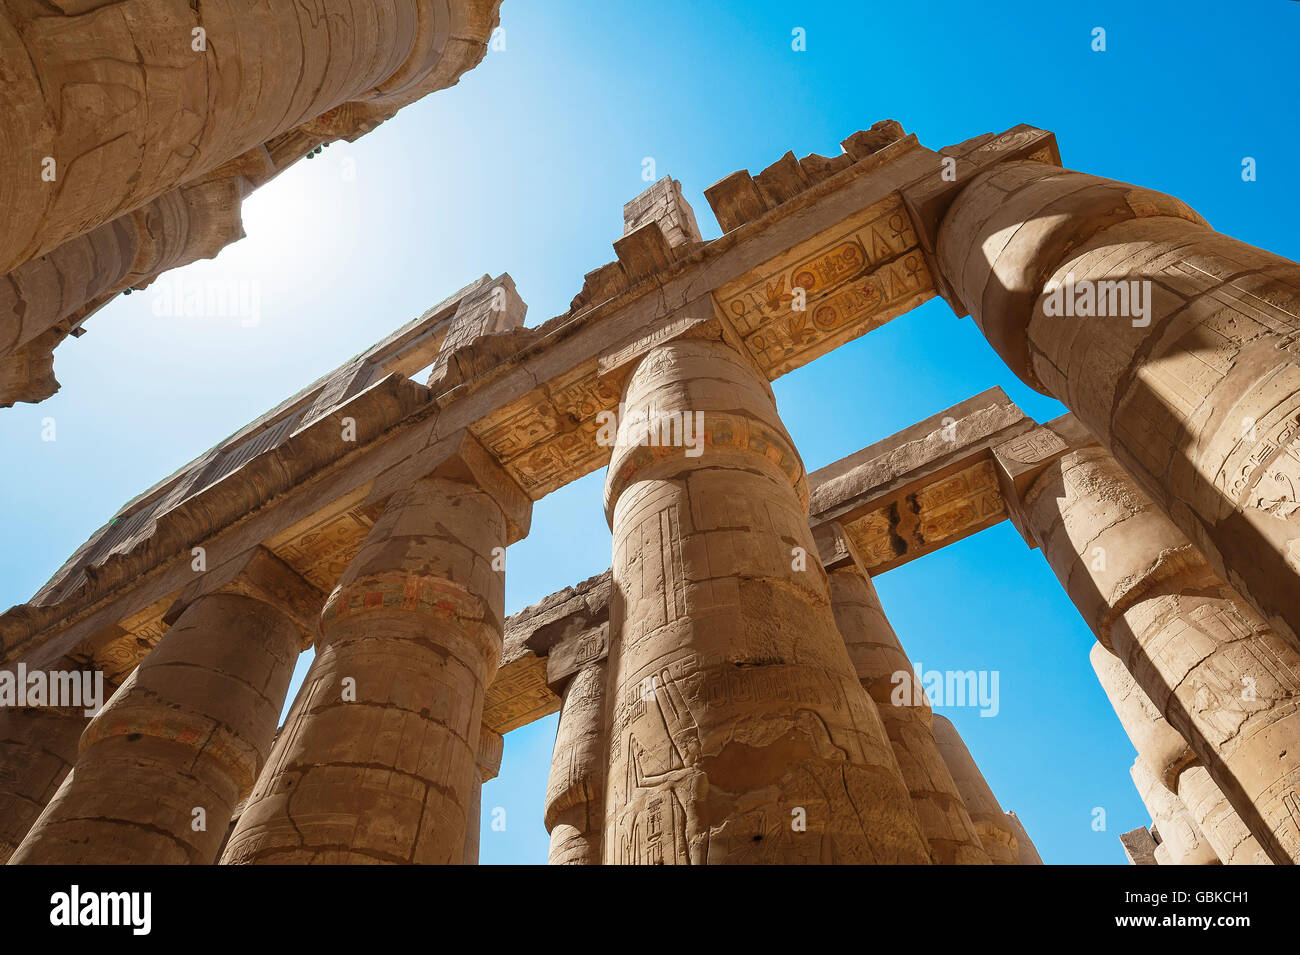 Portico with original color painting, Karnak Temple, Karnak, Luxor, Egypt - Stock Image